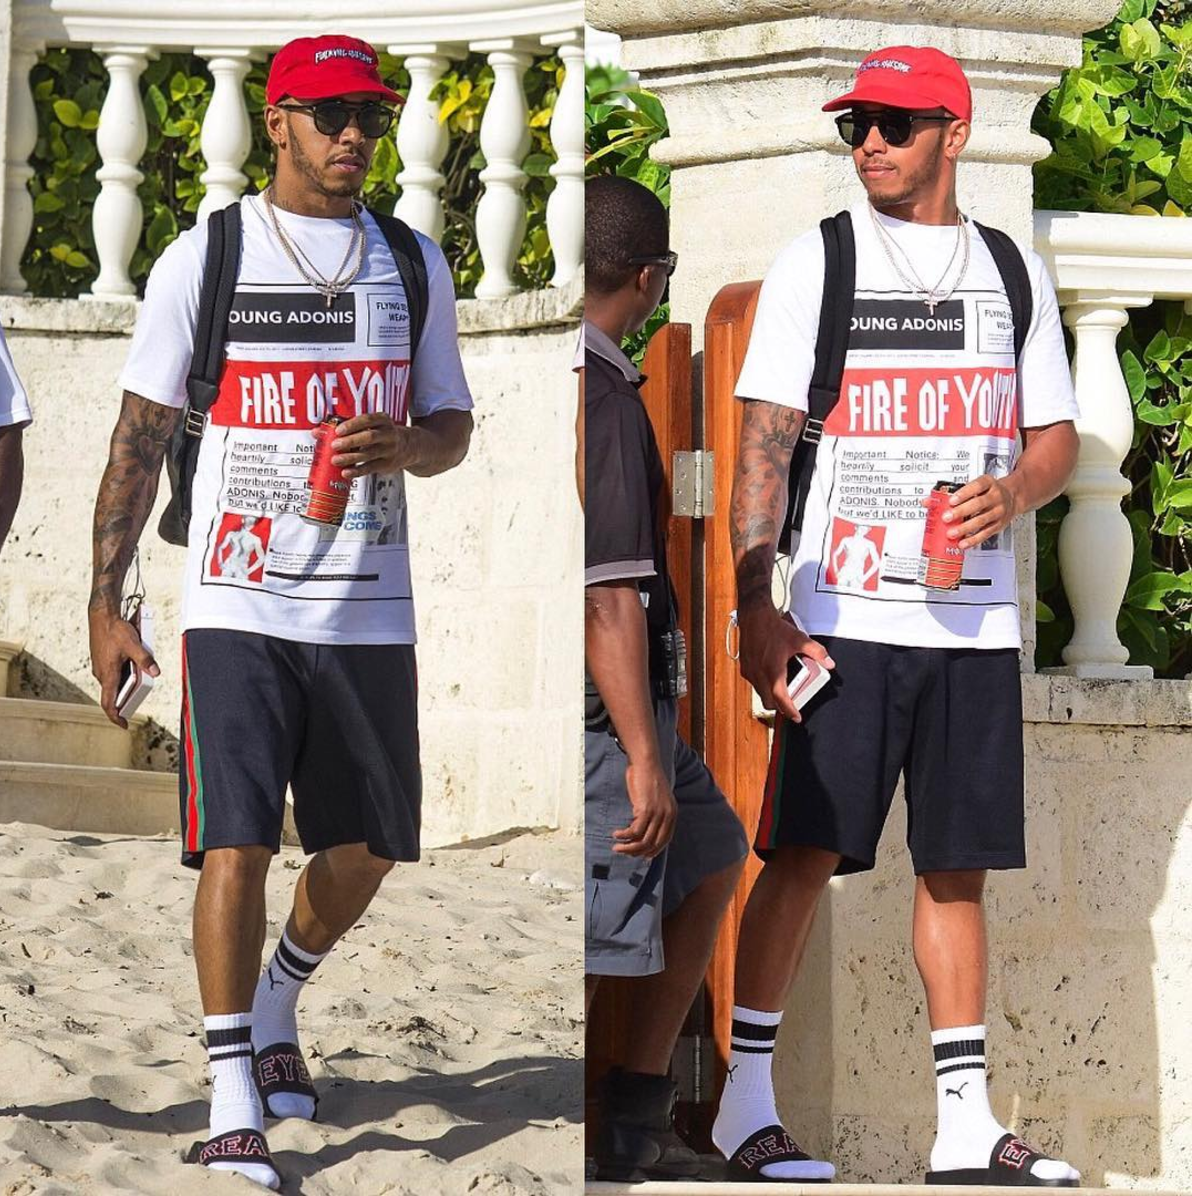 SPOTTED: Lewis Hamilton In Fucking Awesome Cap, Loewe T-Shirt, Gucci Shorts And Givenchy Slides